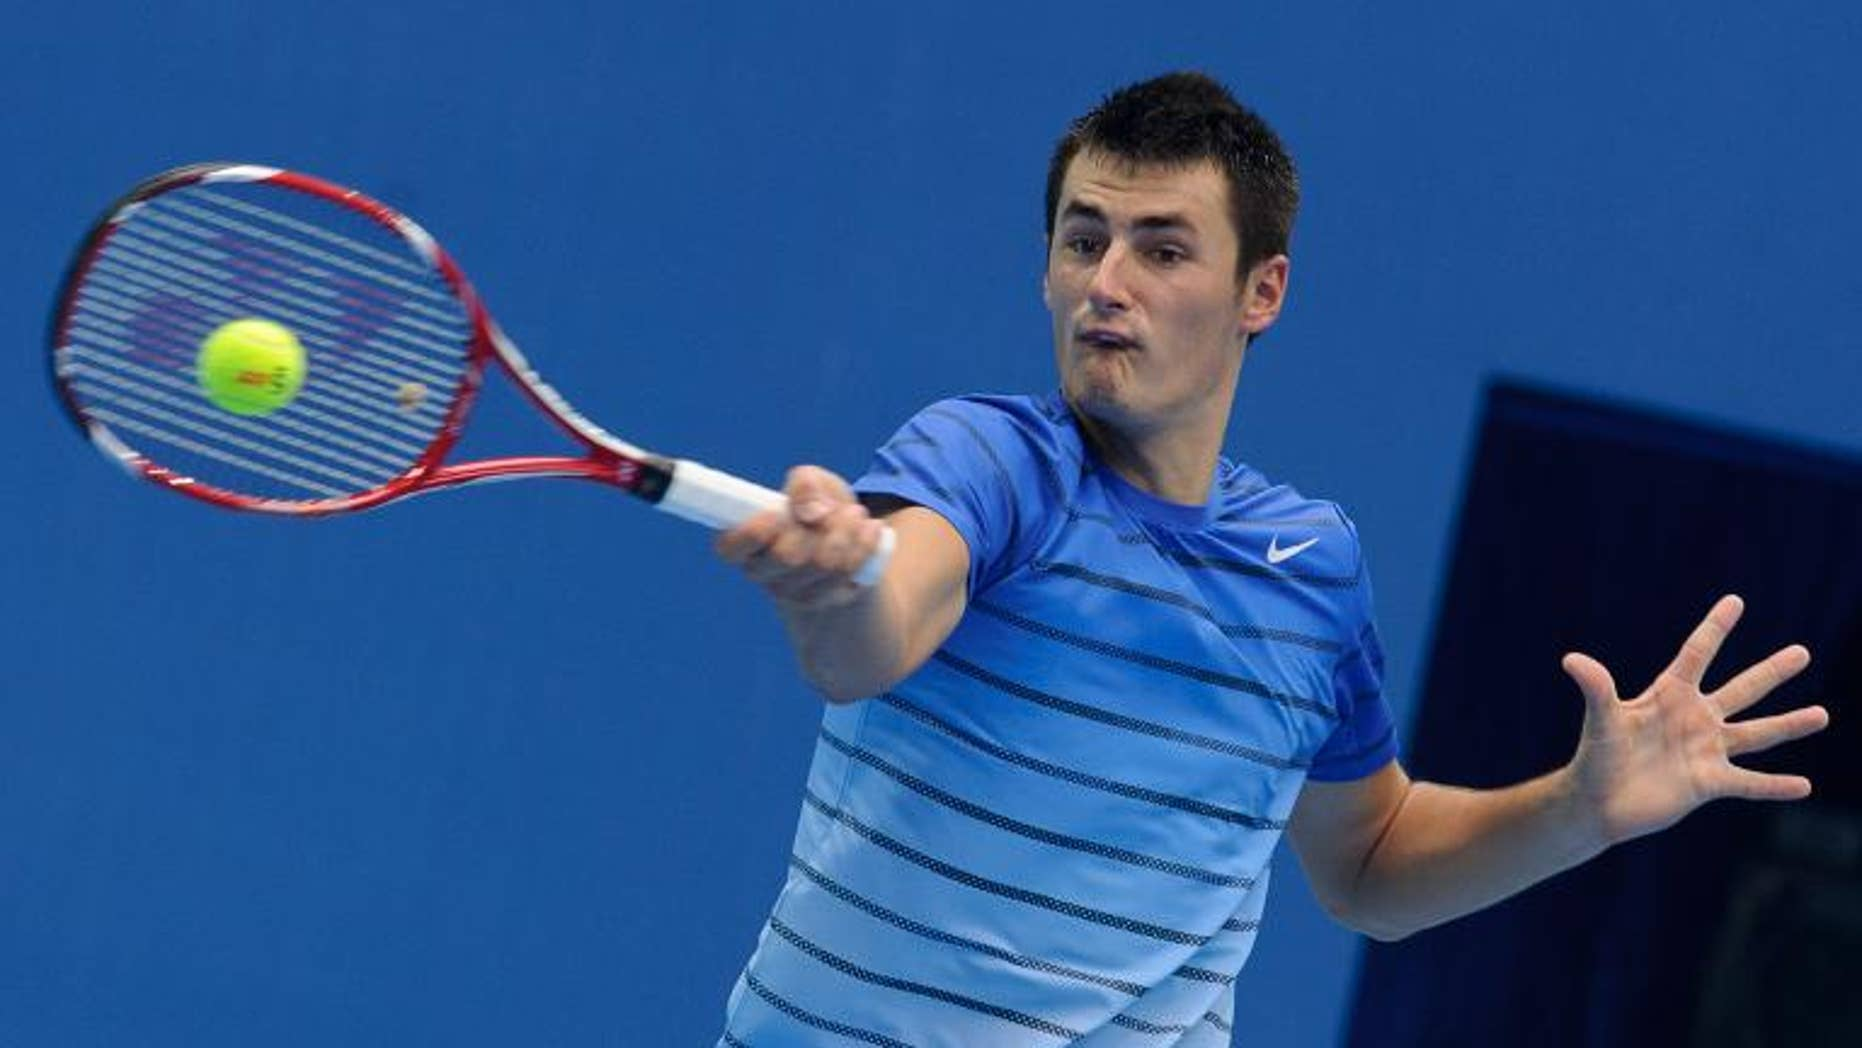 Australia's Bernard Tomic hits a return to China's Zhang Ze during their first round match at the China Open in Beijing on September 30, 2013. Tomic won 7-5, 6-4.